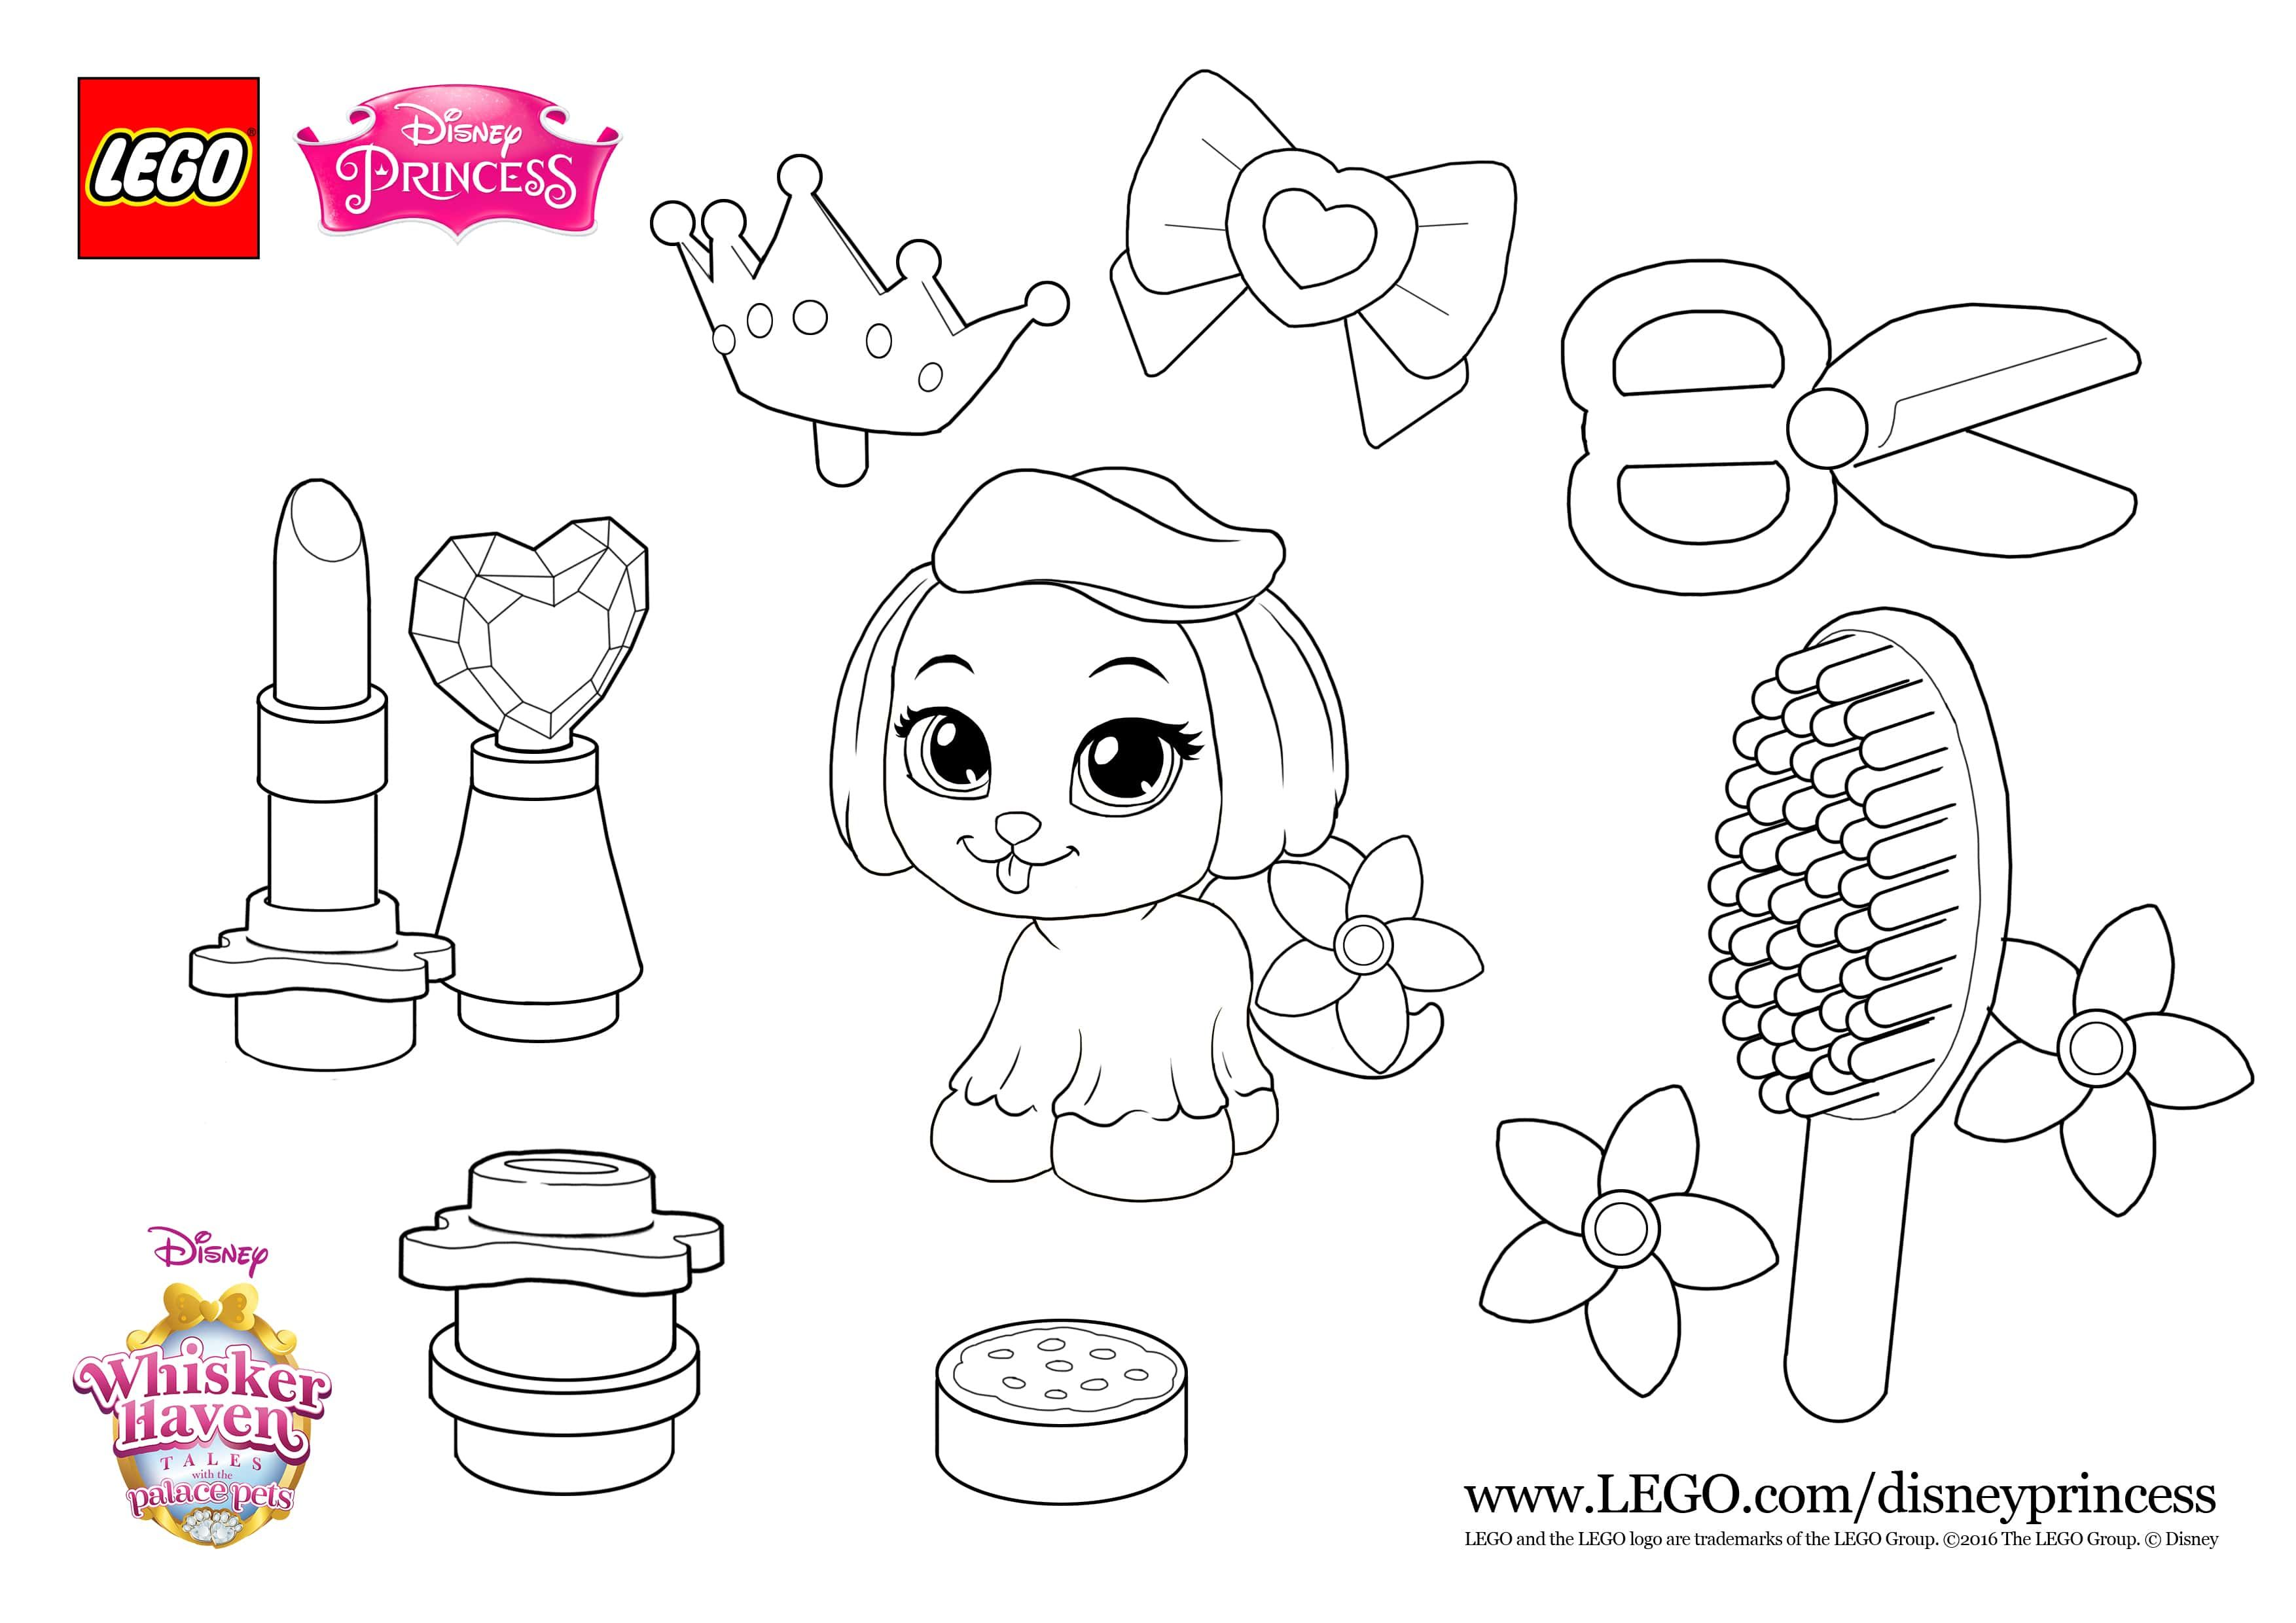 More Fun With Lego Disney Whisker Haven Palace Pets Starring Super Cuty Daisy Print The S Lego Coloring Pages Disney Coloring Pages Toy Story Coloring Pages